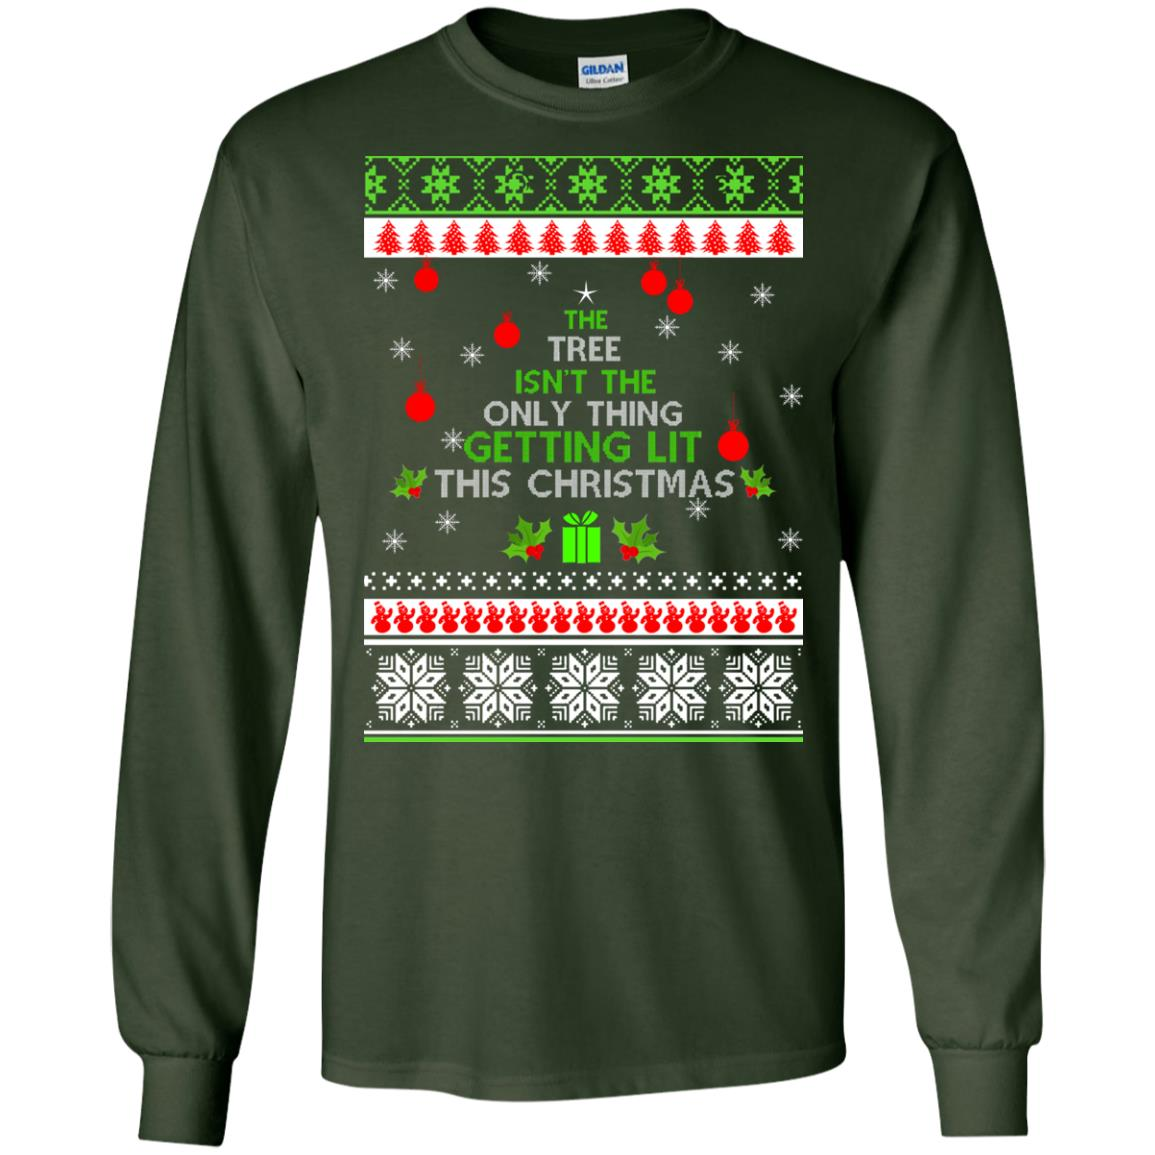 image 5564 - The Tree Isn't The Only Thing Getting Lit This Christmas Sweater, Long Sleeve